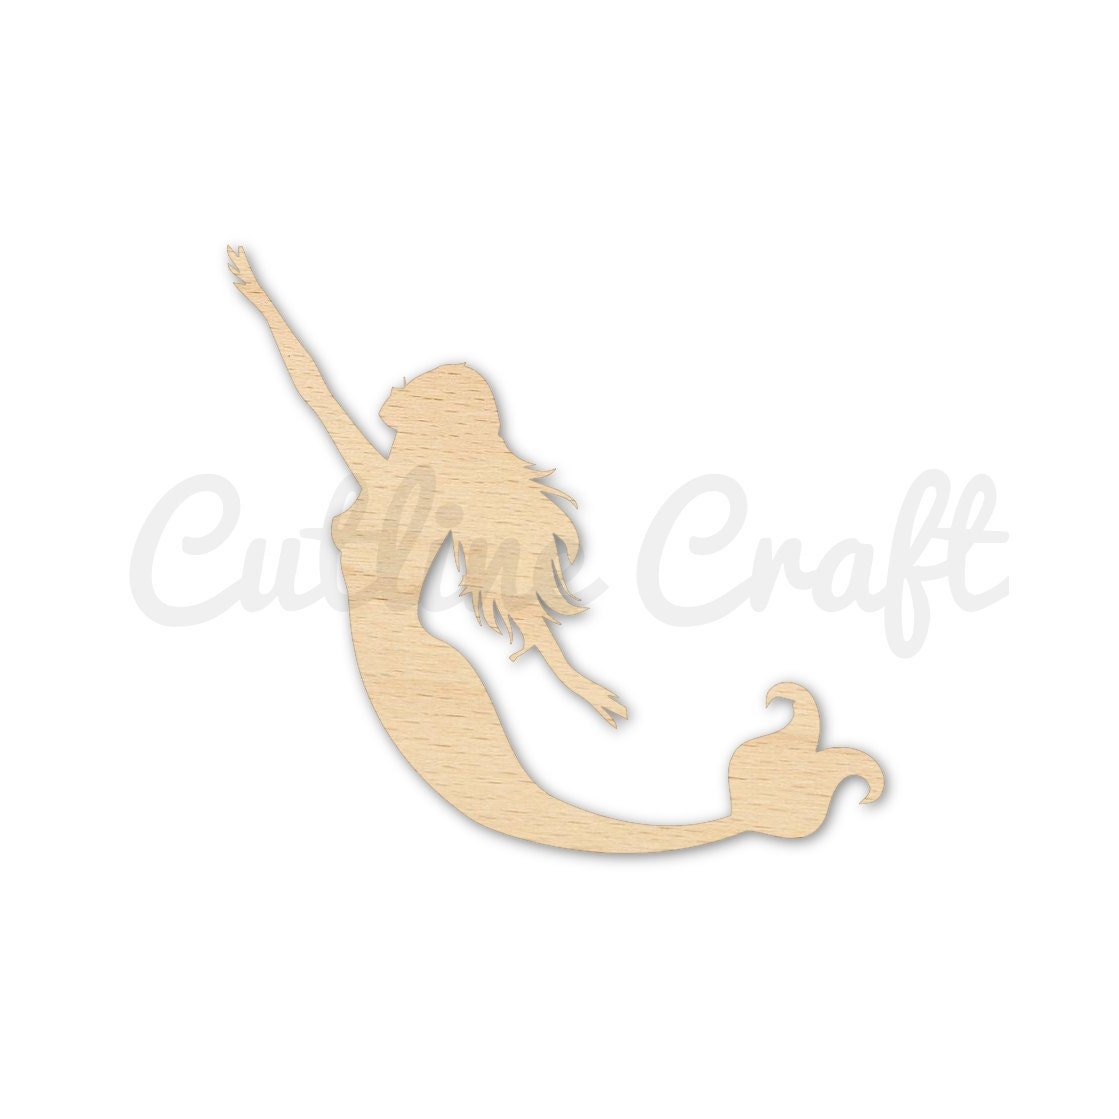 Mermaid Glide 1524 Cutout Shape Gift Tags Ornament